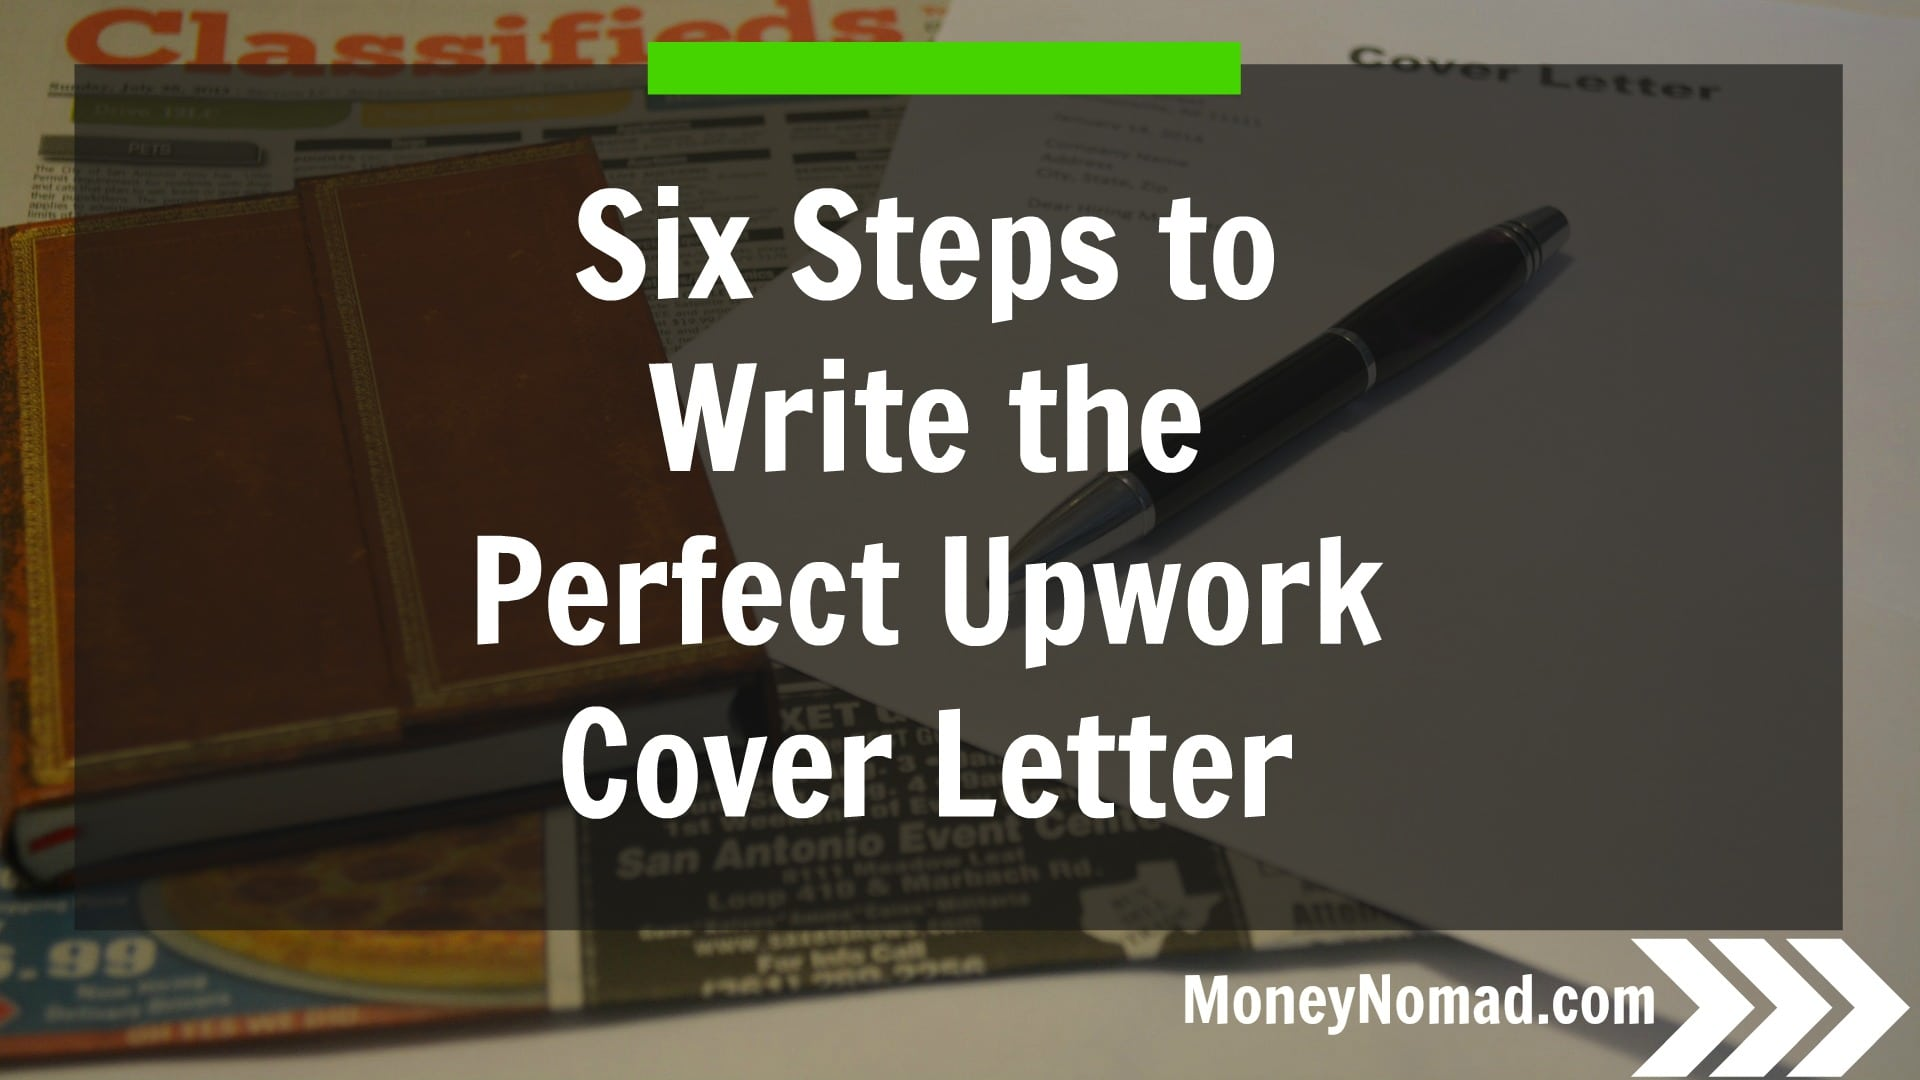 Six Steps To Writing The Perfect Upwork Cover Letter Money Nomad - Steps on how to write a cover letter